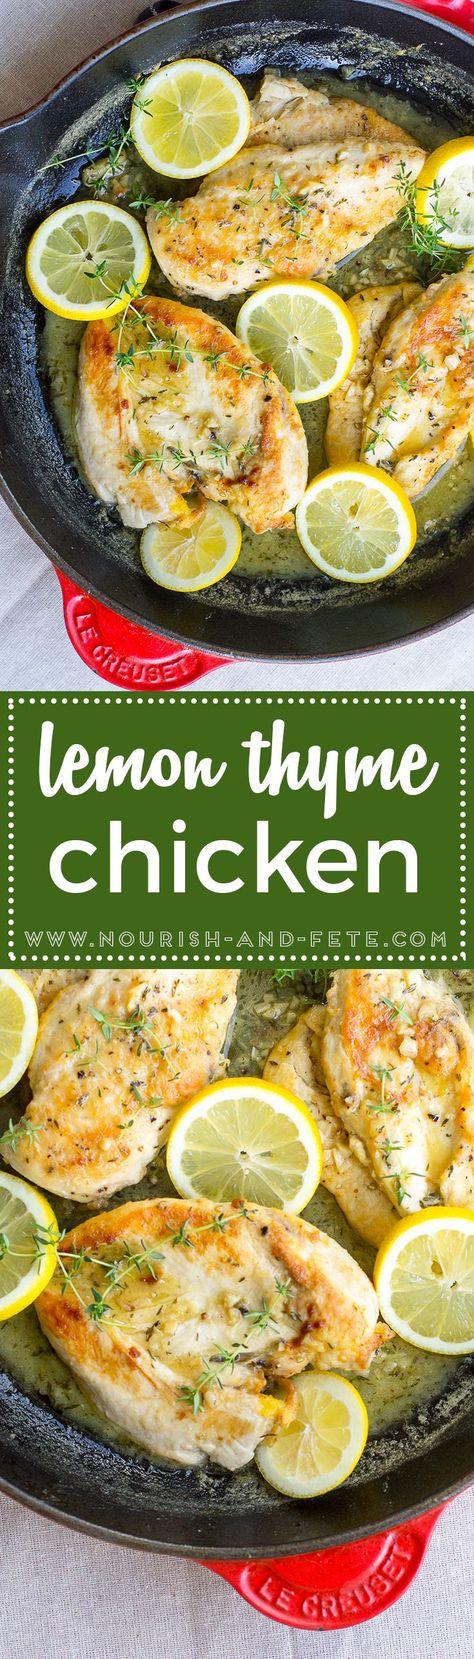 Quick lemon thyme chicken will be your new favorite weeknight dinner!  via @nourishandfete